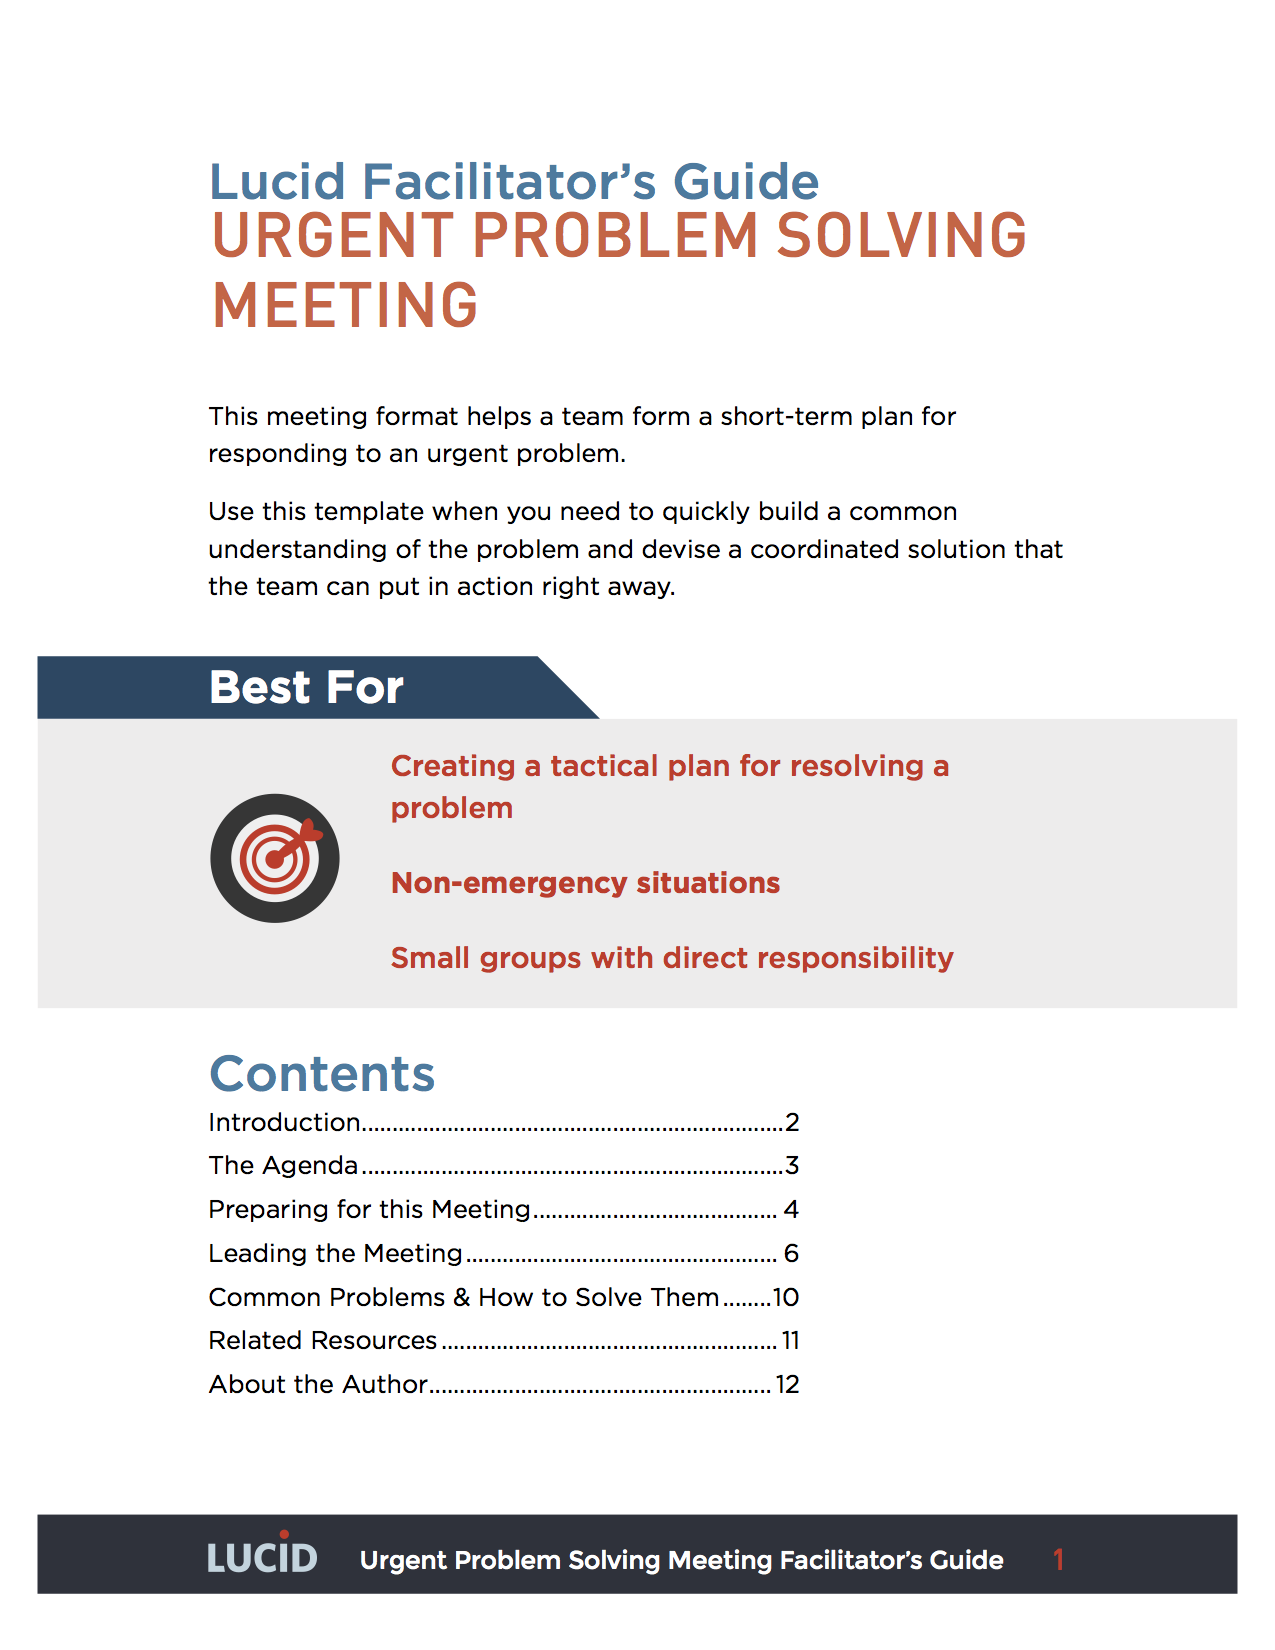 Urgent-Problem-Solving-Facilitators-Guide.png